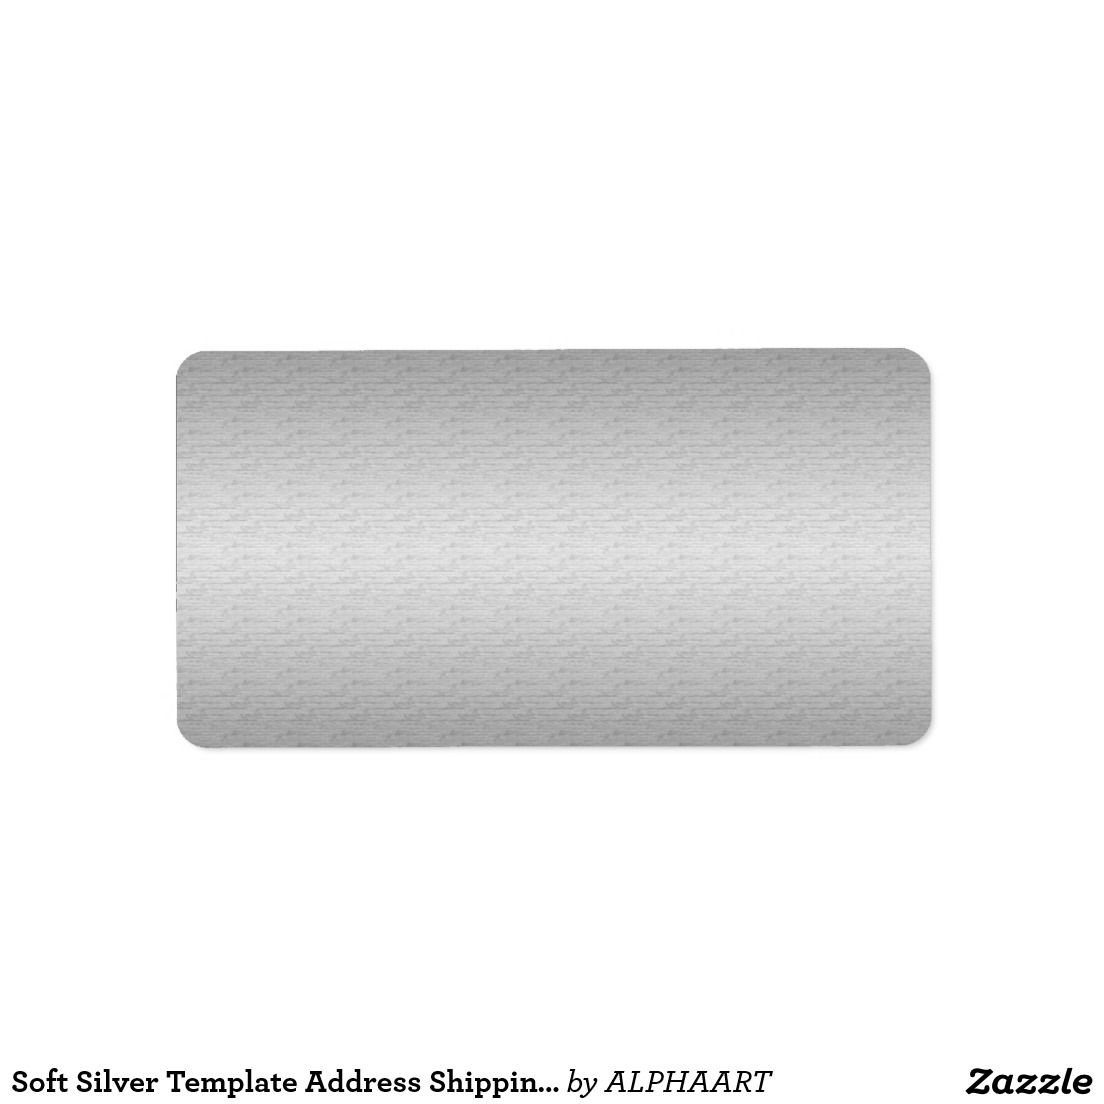 Soft Silver Template Address Shipping Label   Zazzle Pro